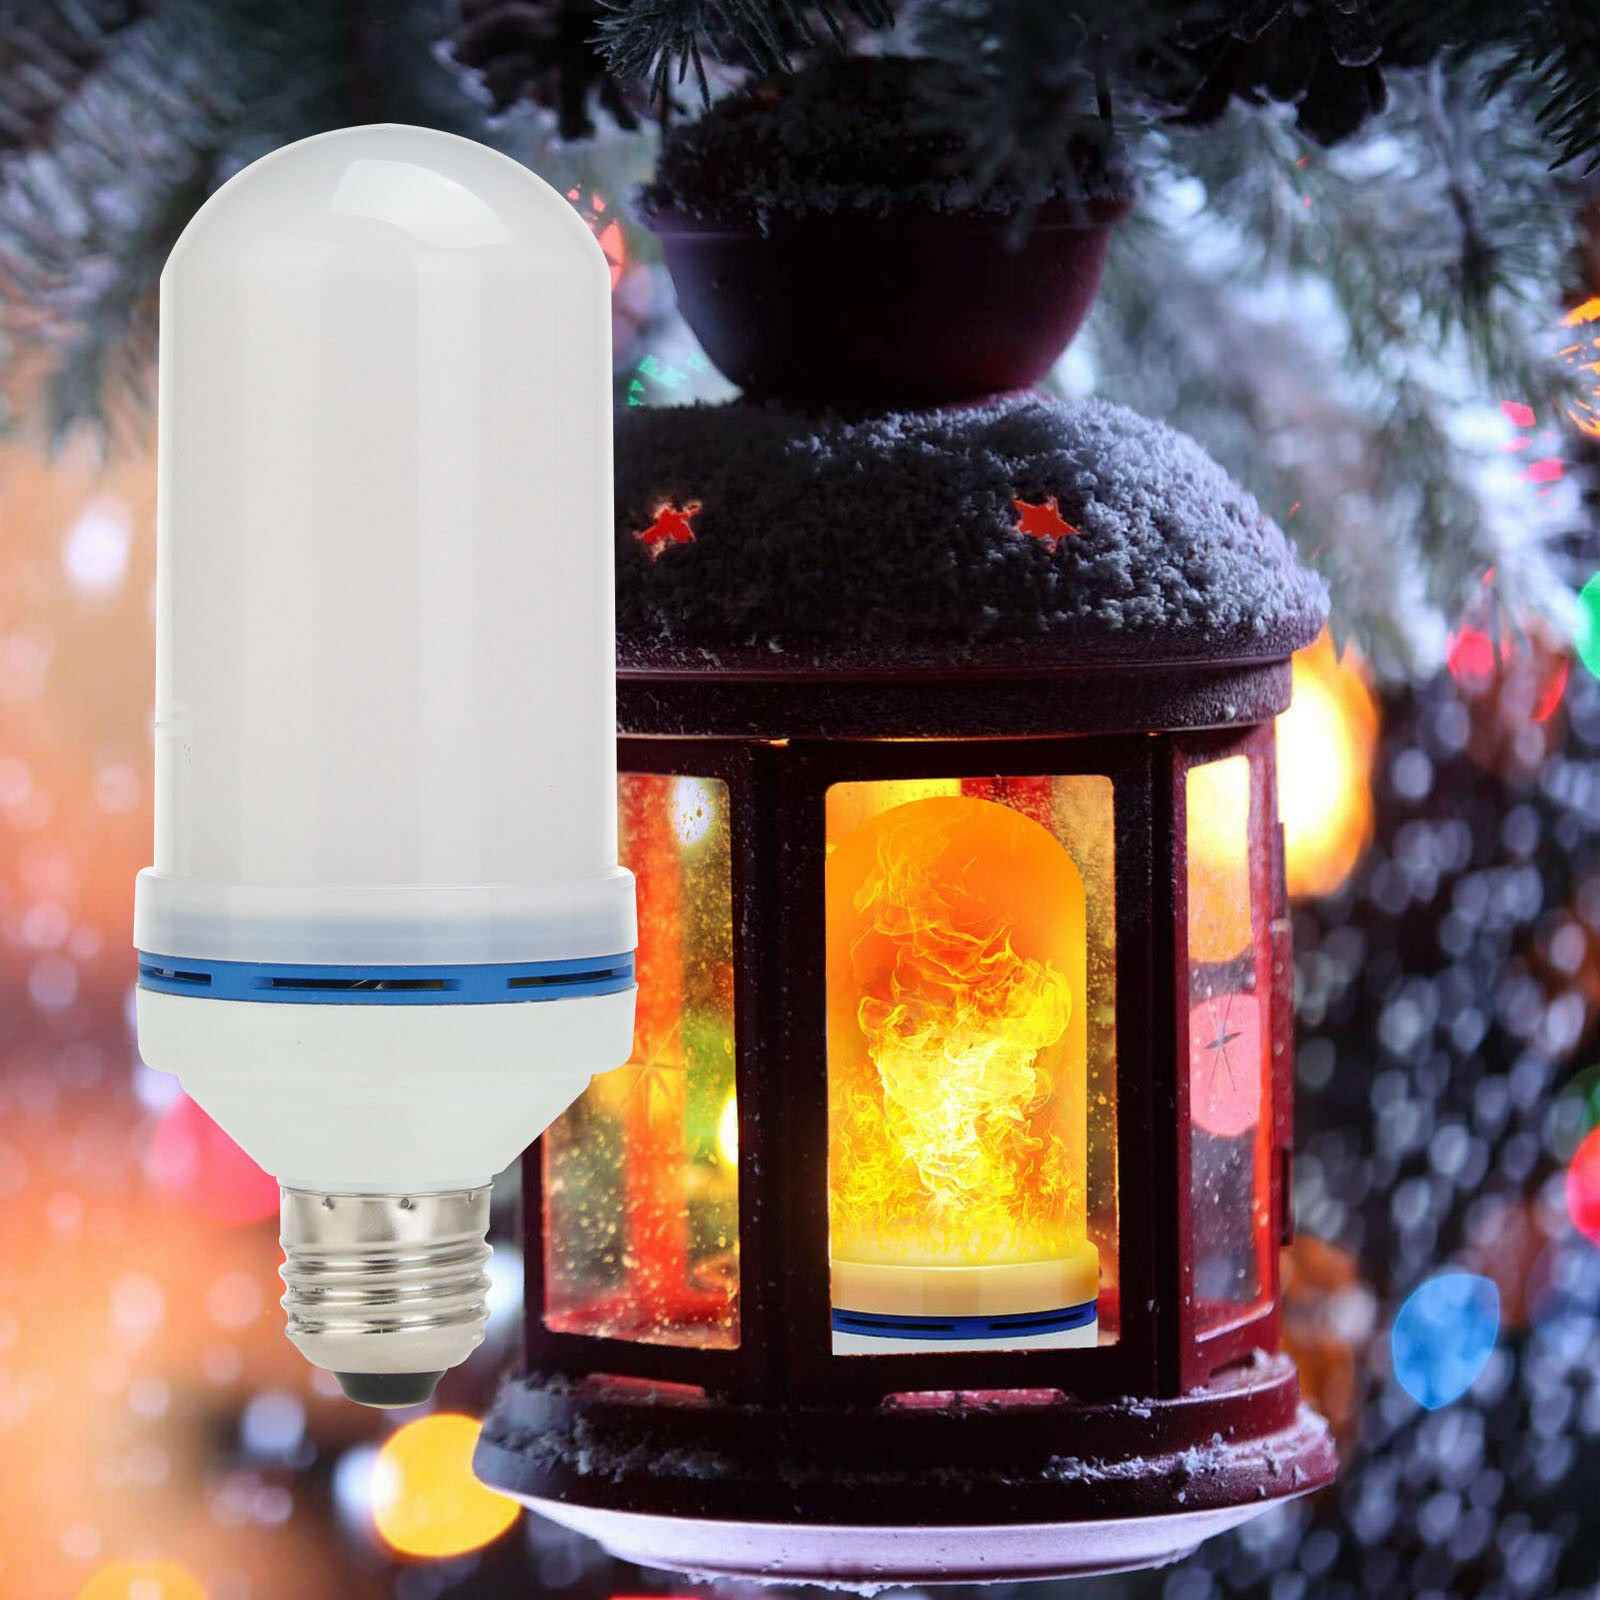 New Design 4 Modes E27/ E26 LED Flame Bulb Upside Down Effect Simulated Decorative Vintage Atmosphere Lights Lamp For Halloween